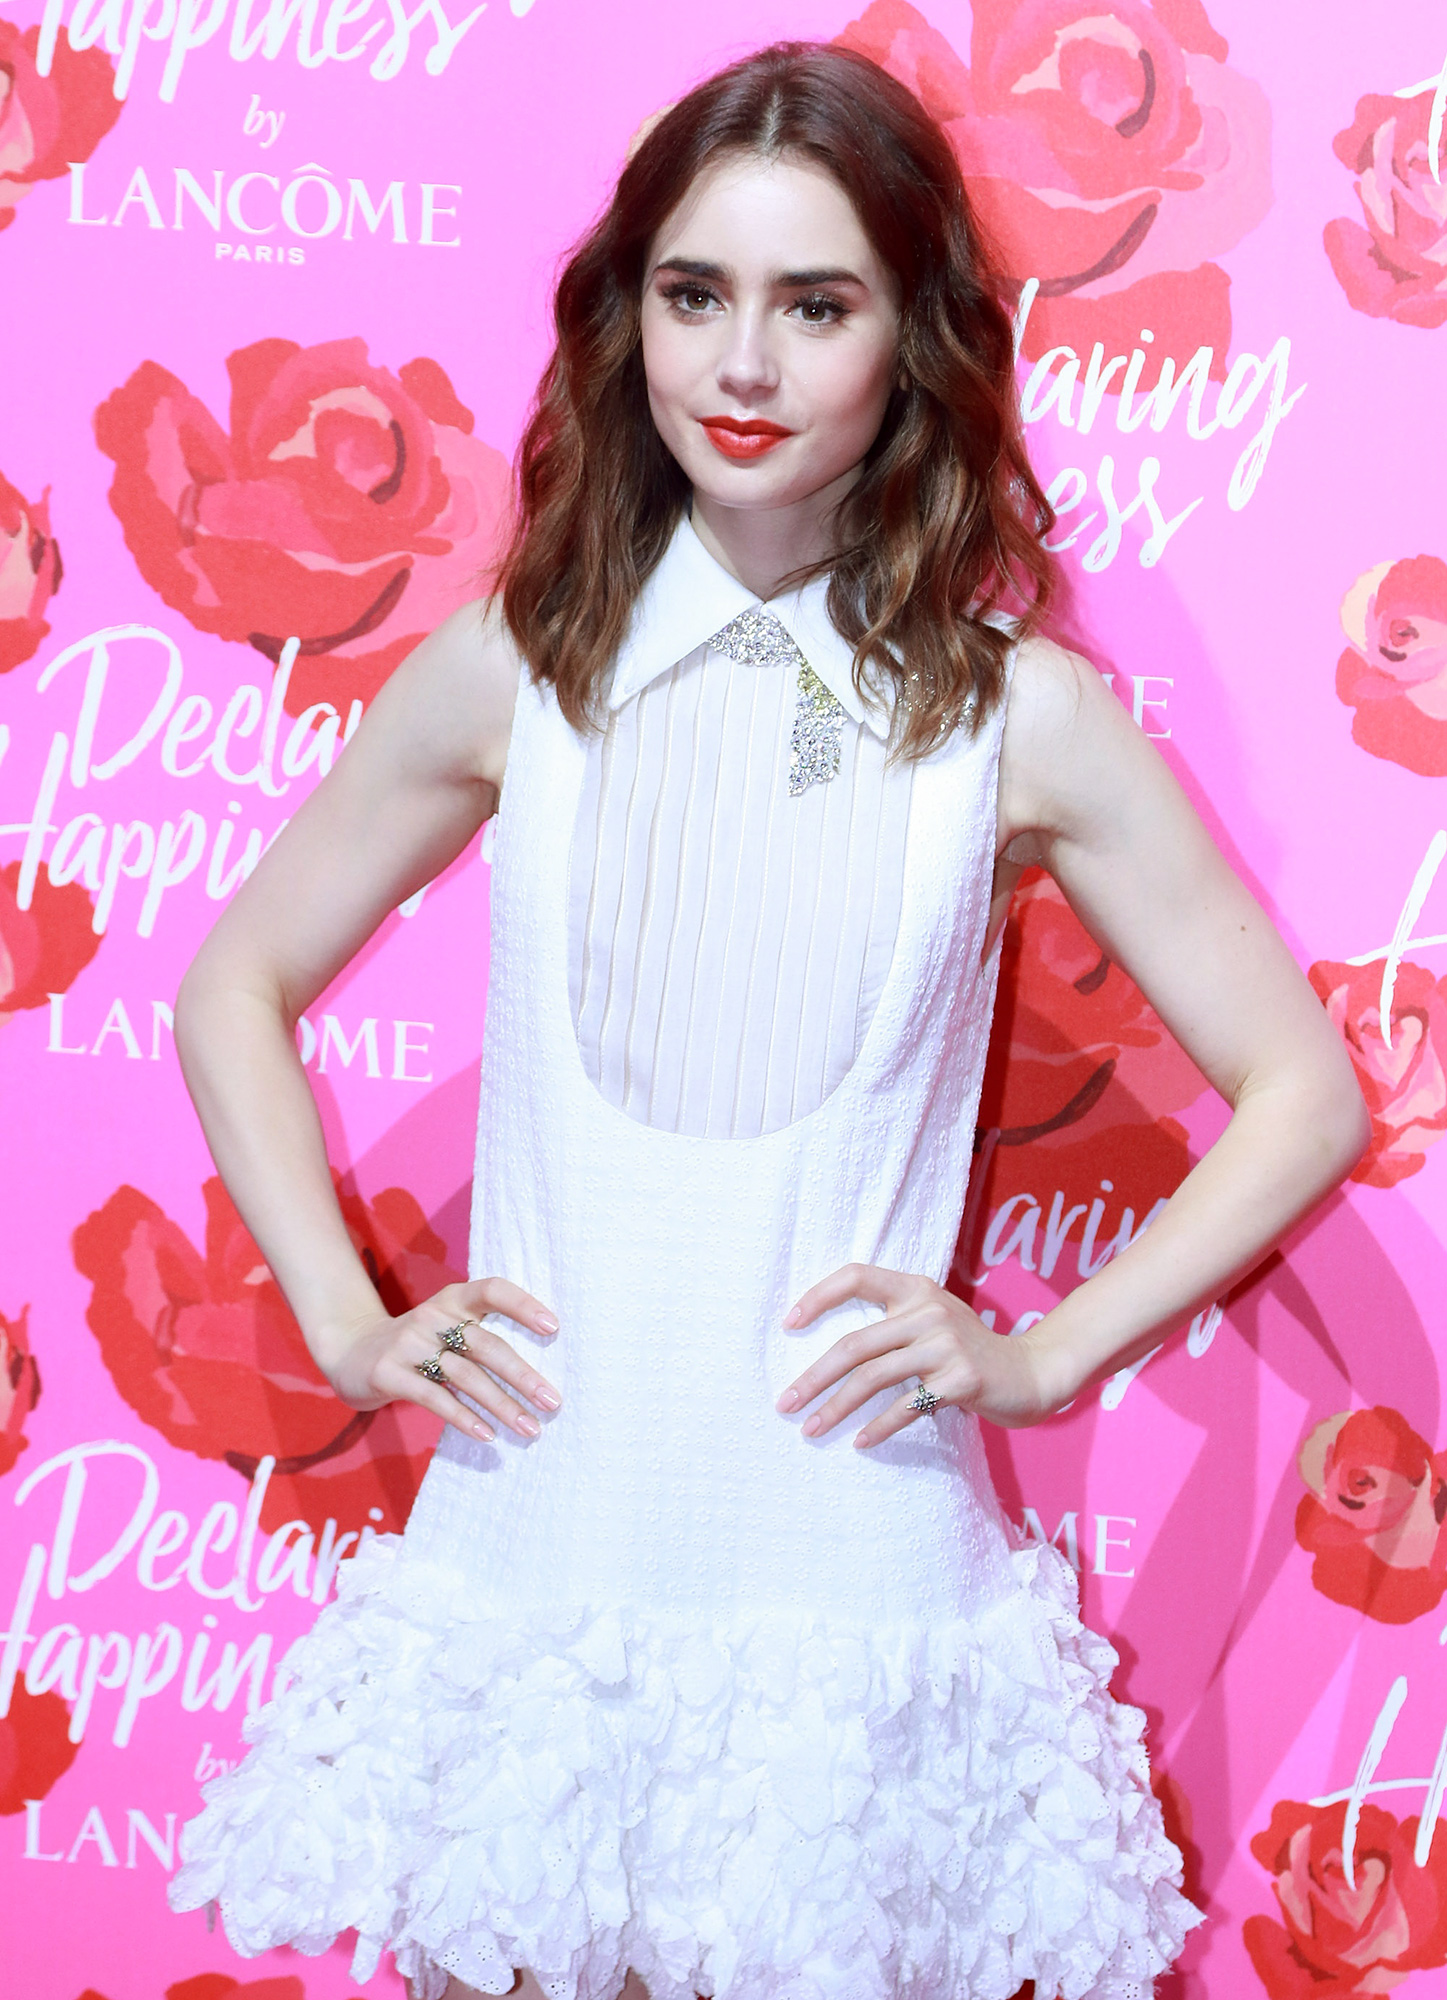 Stars Highlight Opening Ceremony Of Lancome 'Declaring Happiness' Exhibition In Shanghai